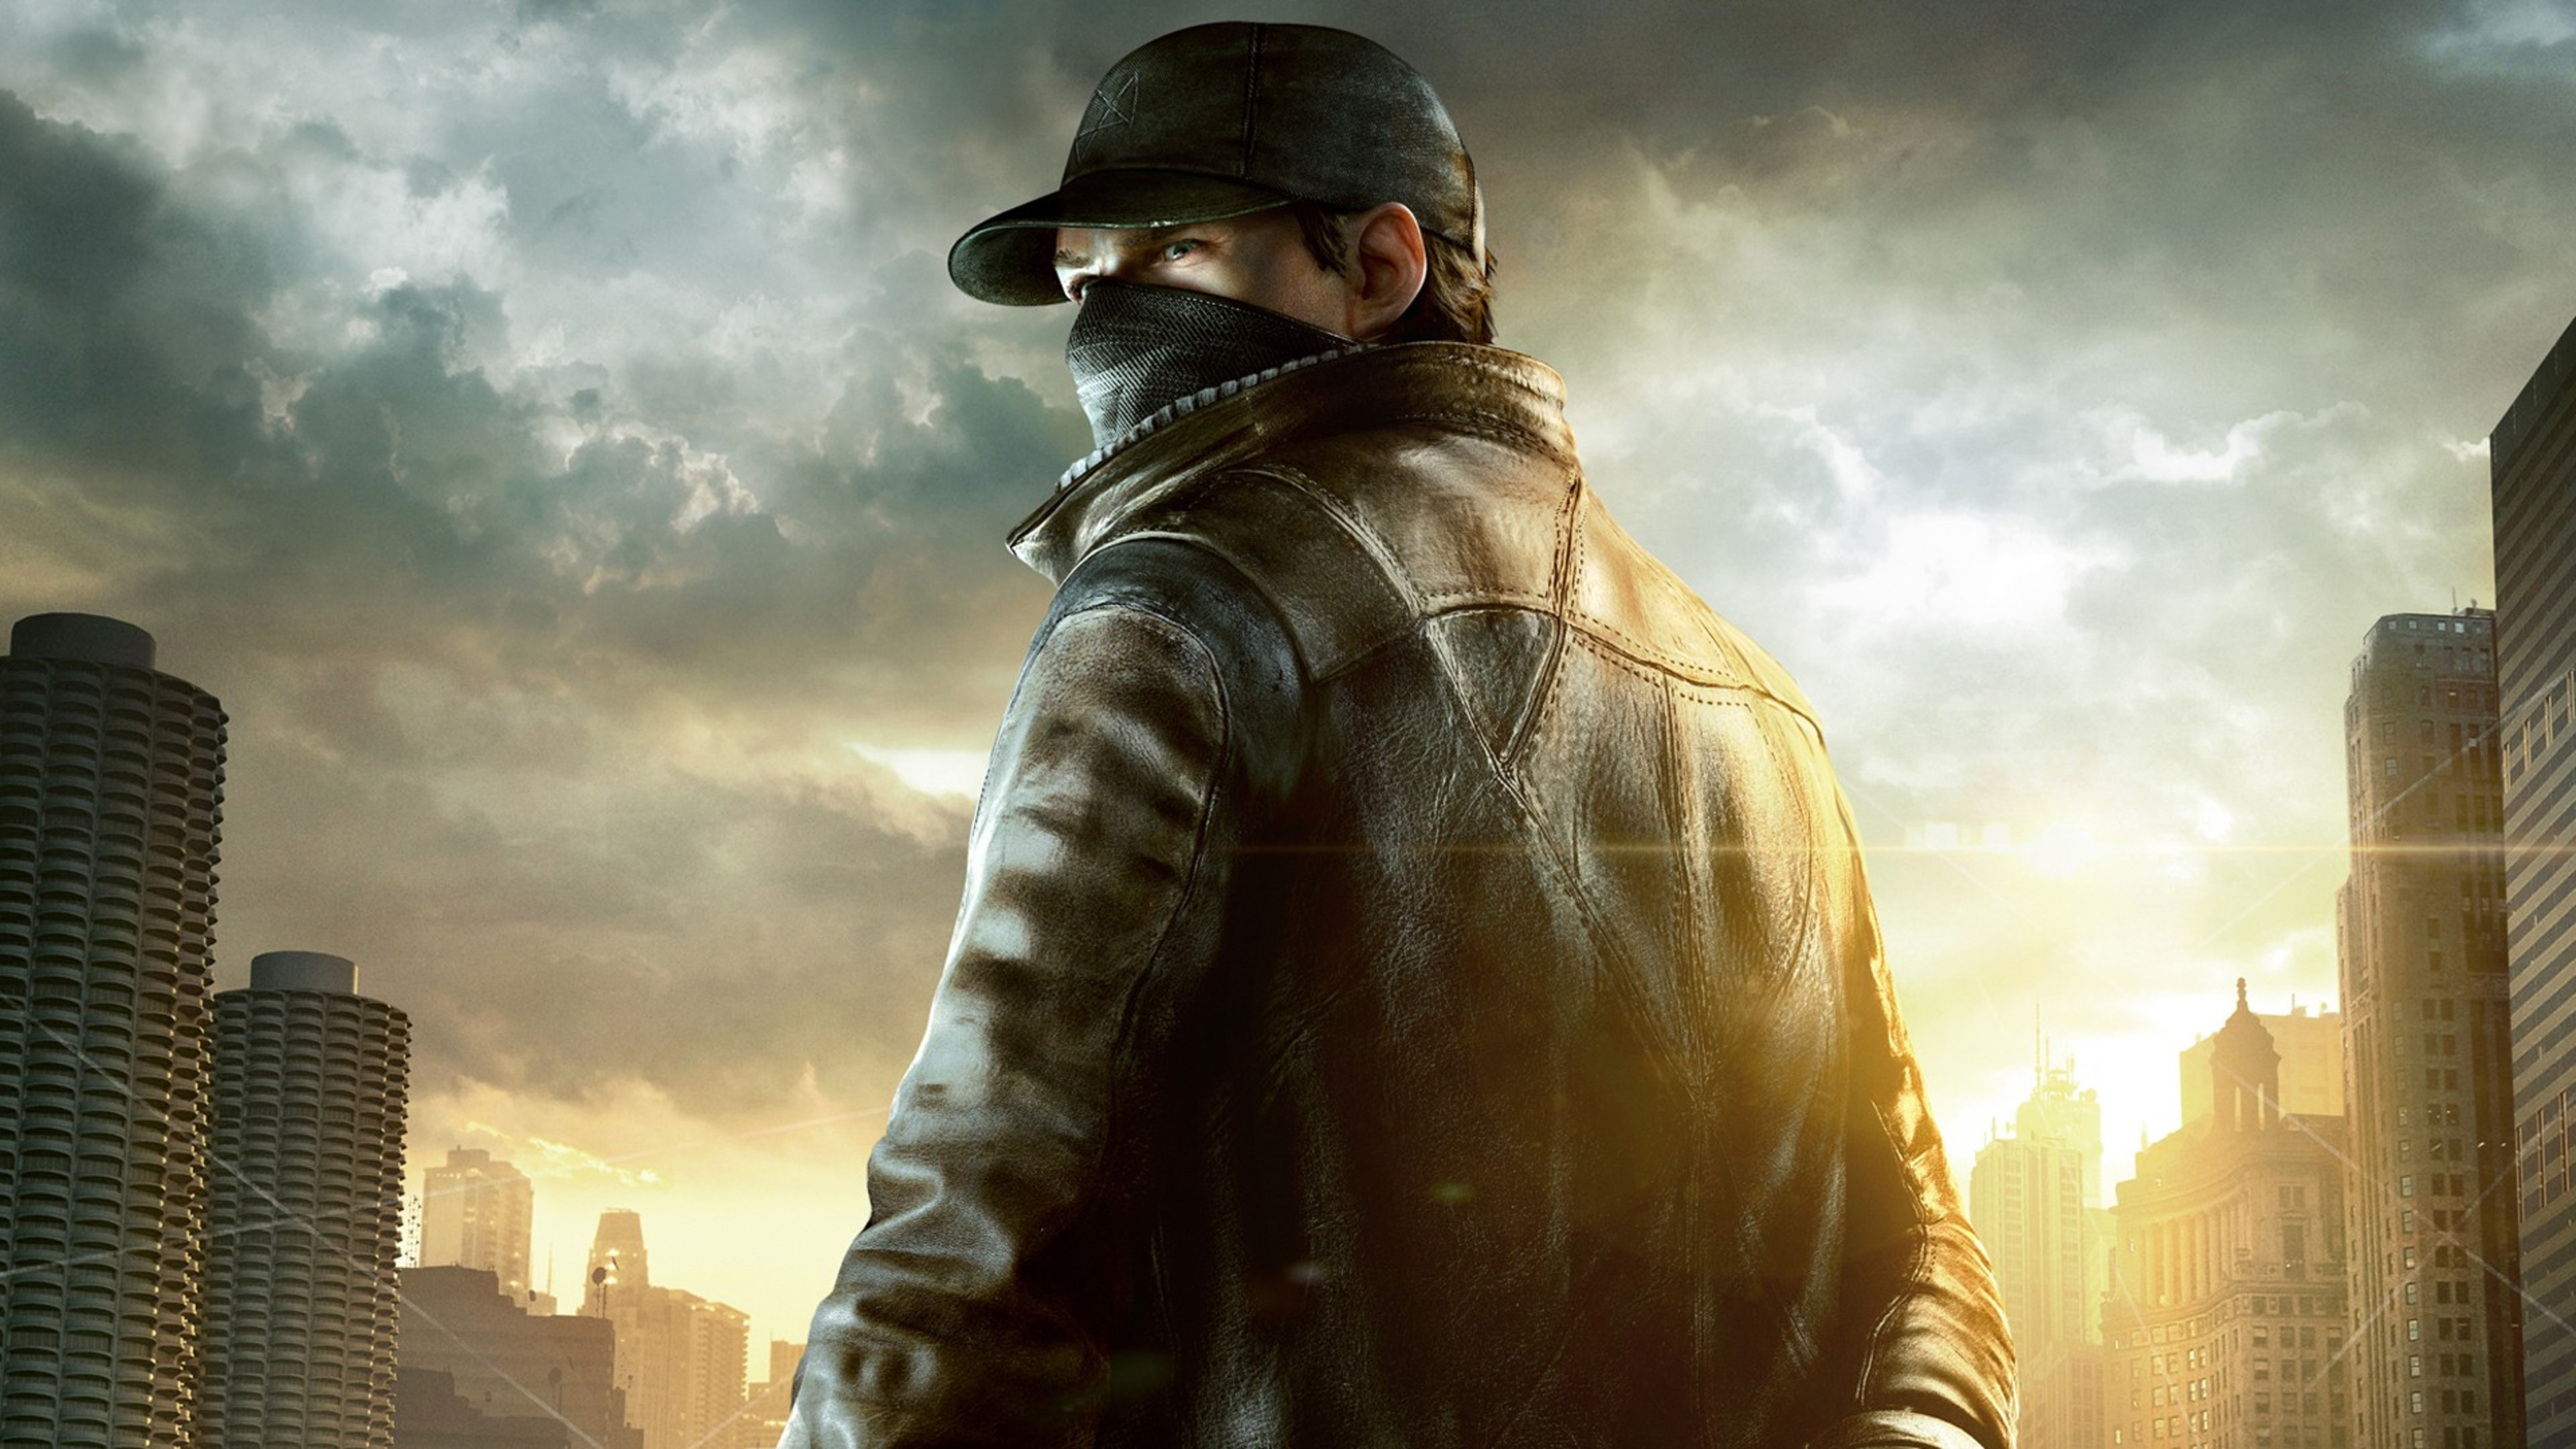 2048x1152 Aiden Pearce Watch Dogs 2048x1152 Resolution Hd